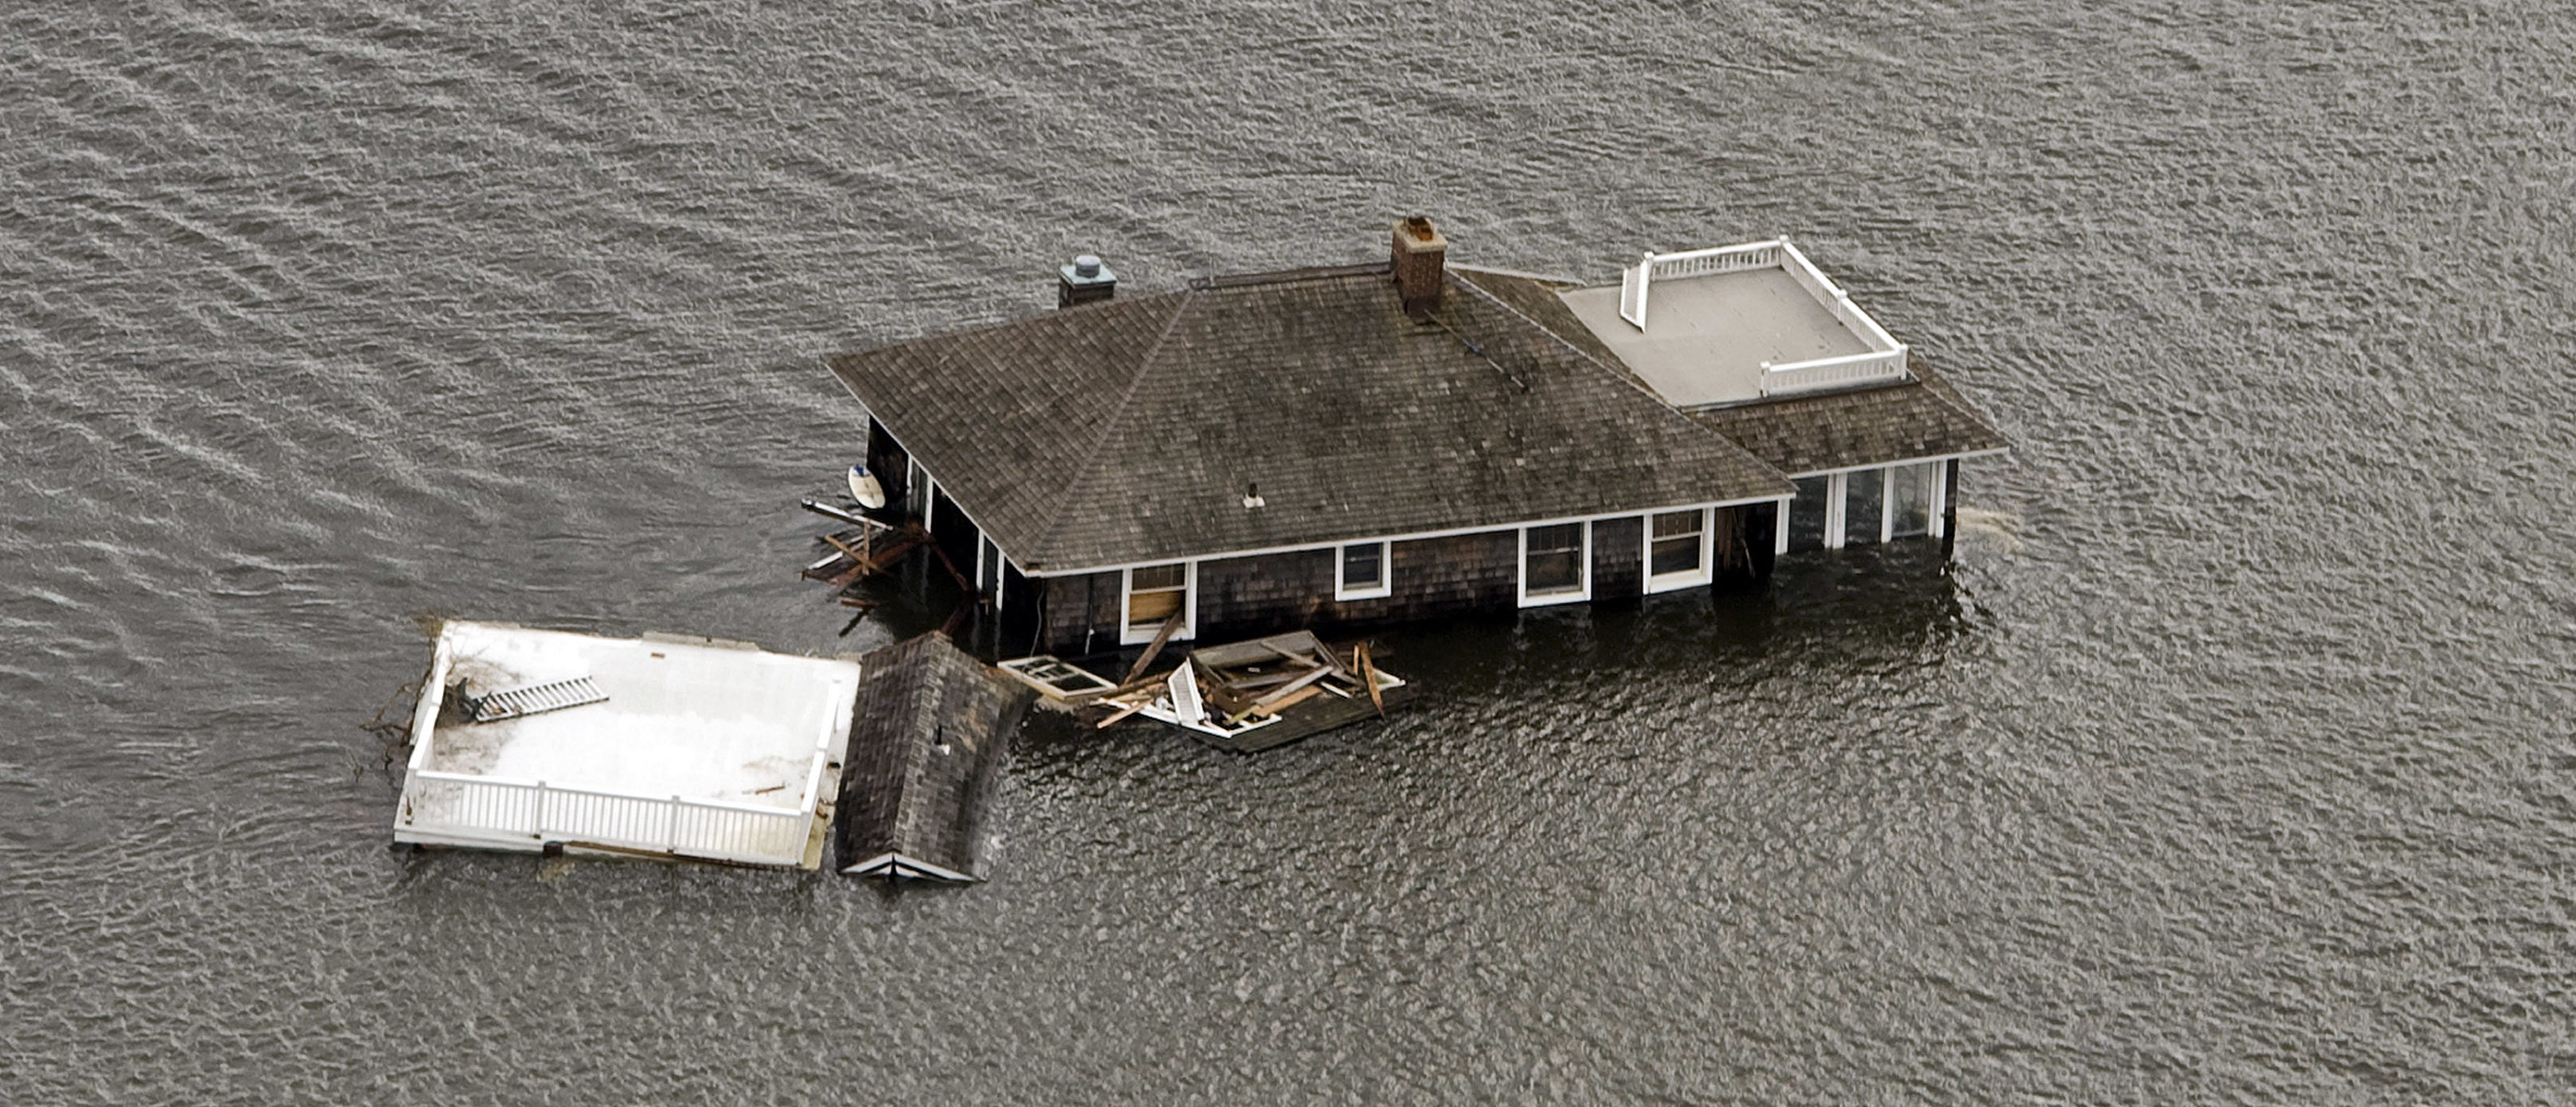 A house floats in the bay after it was washed from its foundation during Hurricane Sandy in Manotoloking, New Jersey October 31, 2012. The U.S. Northeast began an arduous slog back to normal on Wednesday after historic monster storm Sandy crippled transportation, knocked out power for millions and killed at least 64 people with a massive storm surge that caused epic flooding. REUTERS/Steve Nesius (UNITED STATES - Tags: ENVIRONMENT DISASTER) - GM1E8B10BZH01